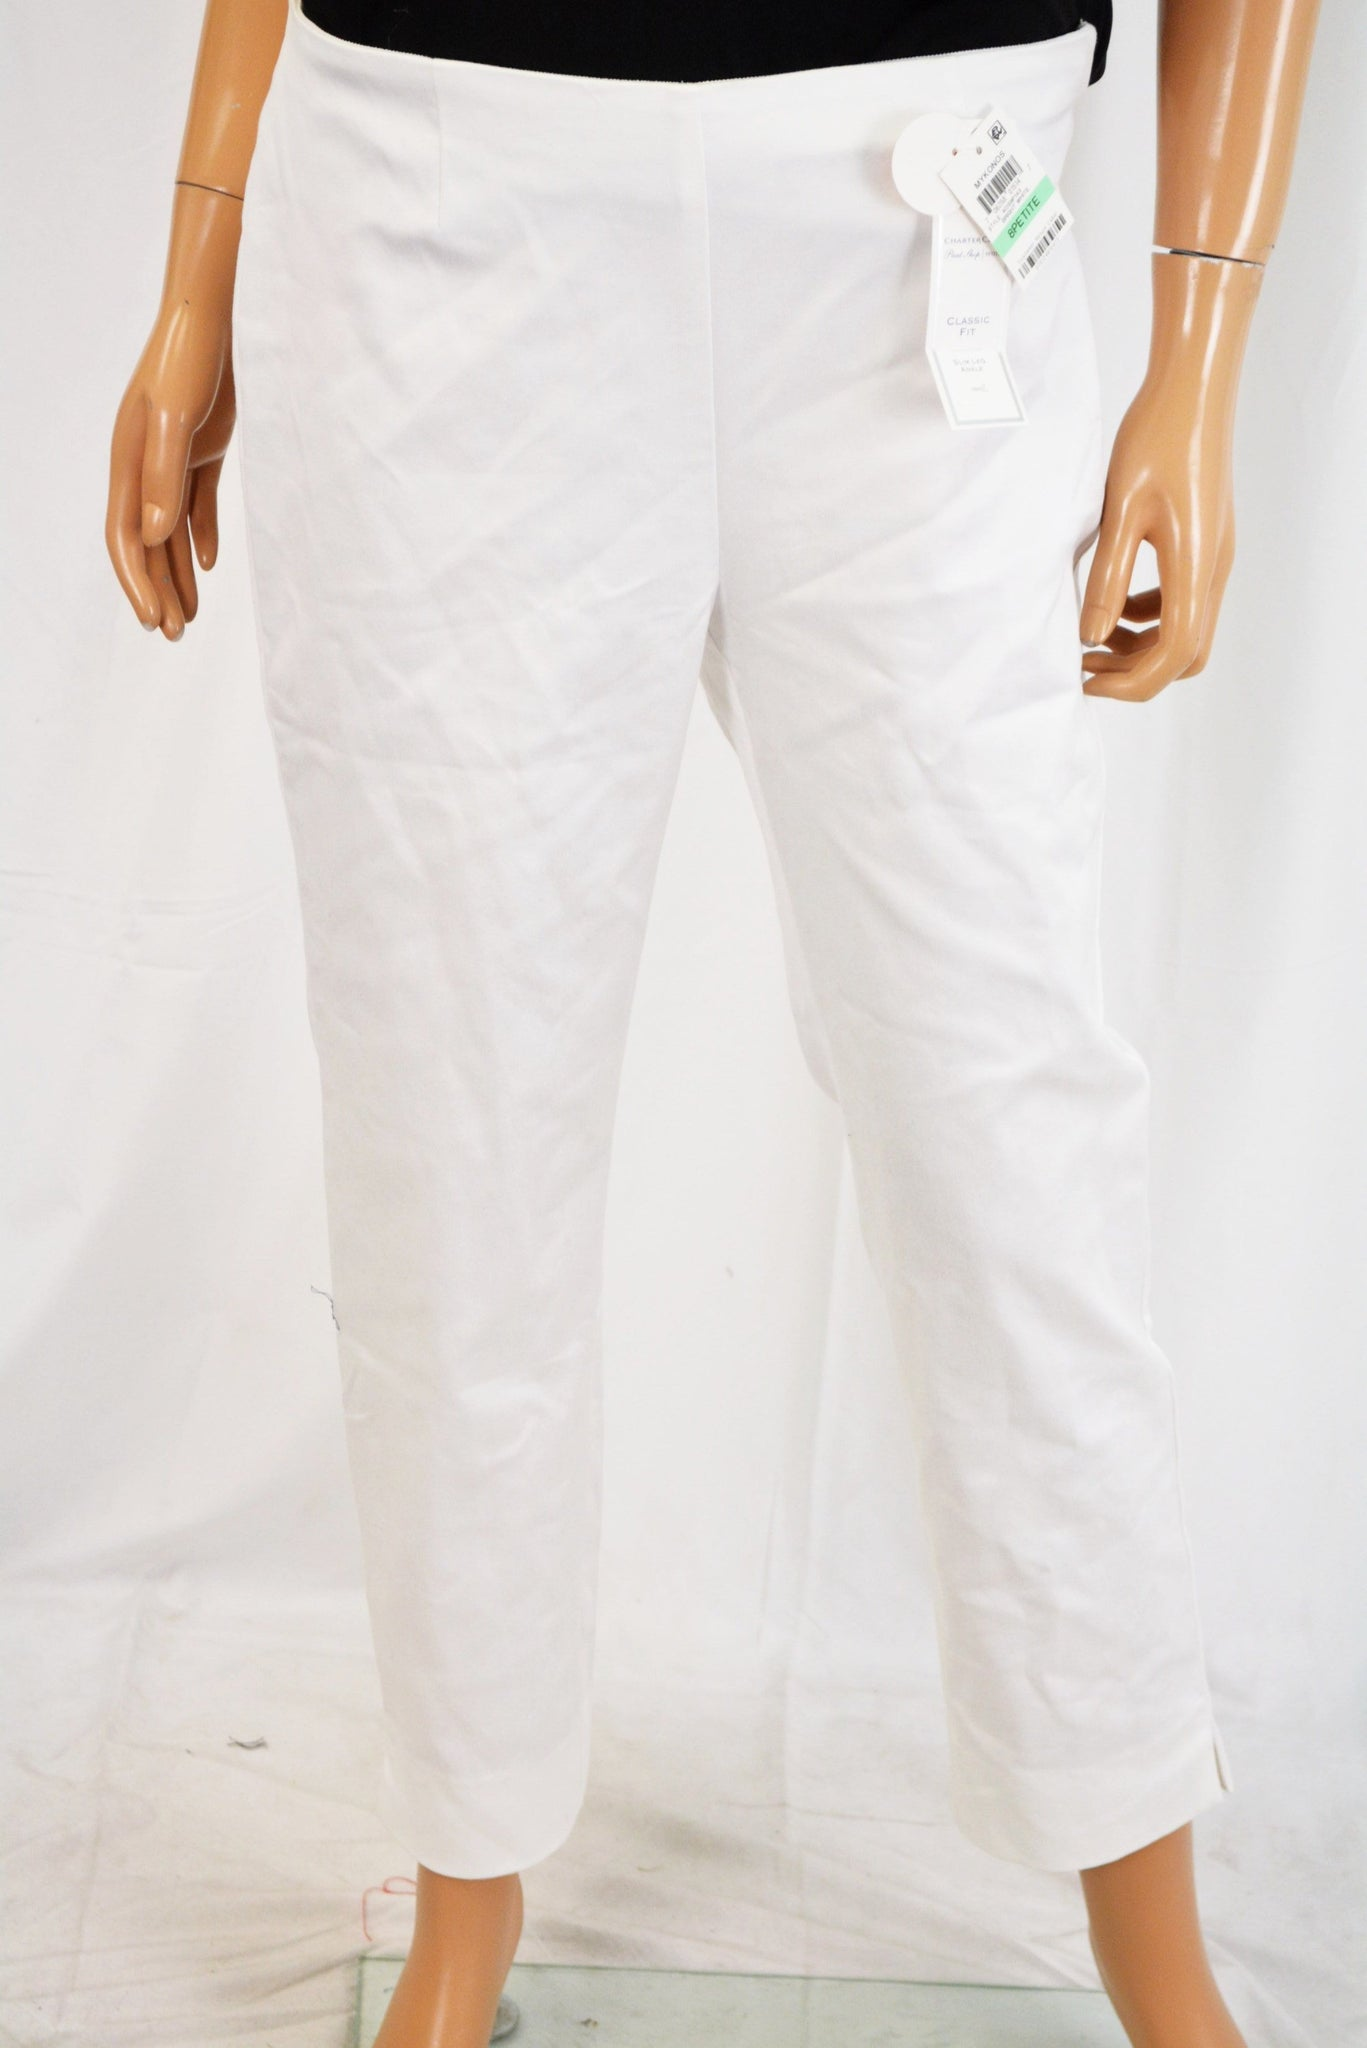 Charter Club Women's White Comfort-Waist Ankle Pants Petite 8P